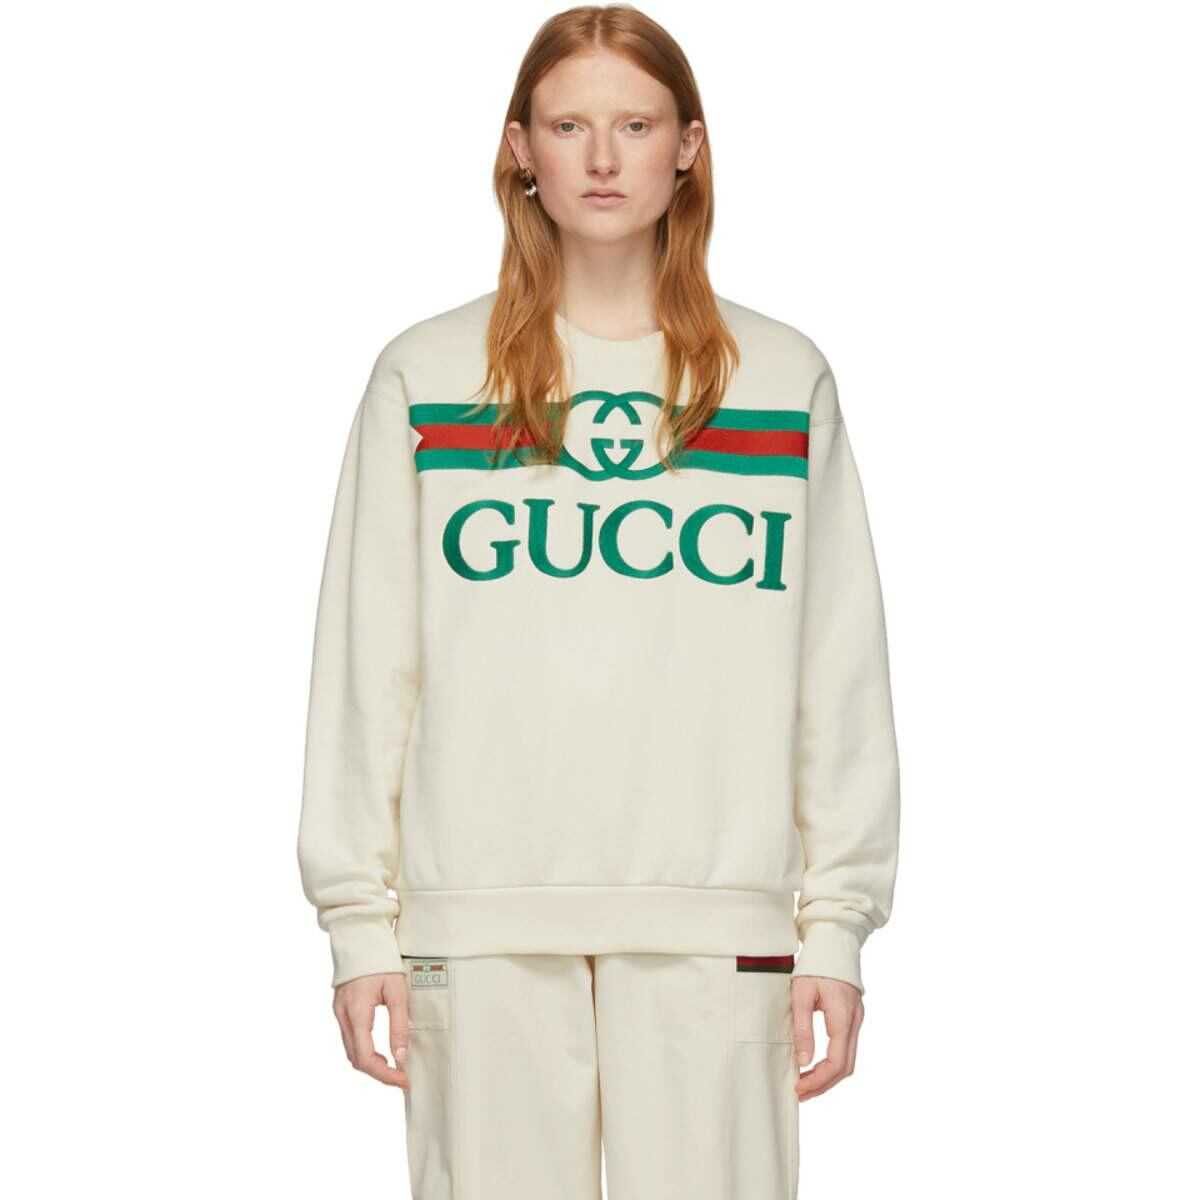 Gucci Off-White Vintage Logo Sweatshirt Ssense USA WOMEN Women FASHION Womens SWEATERS